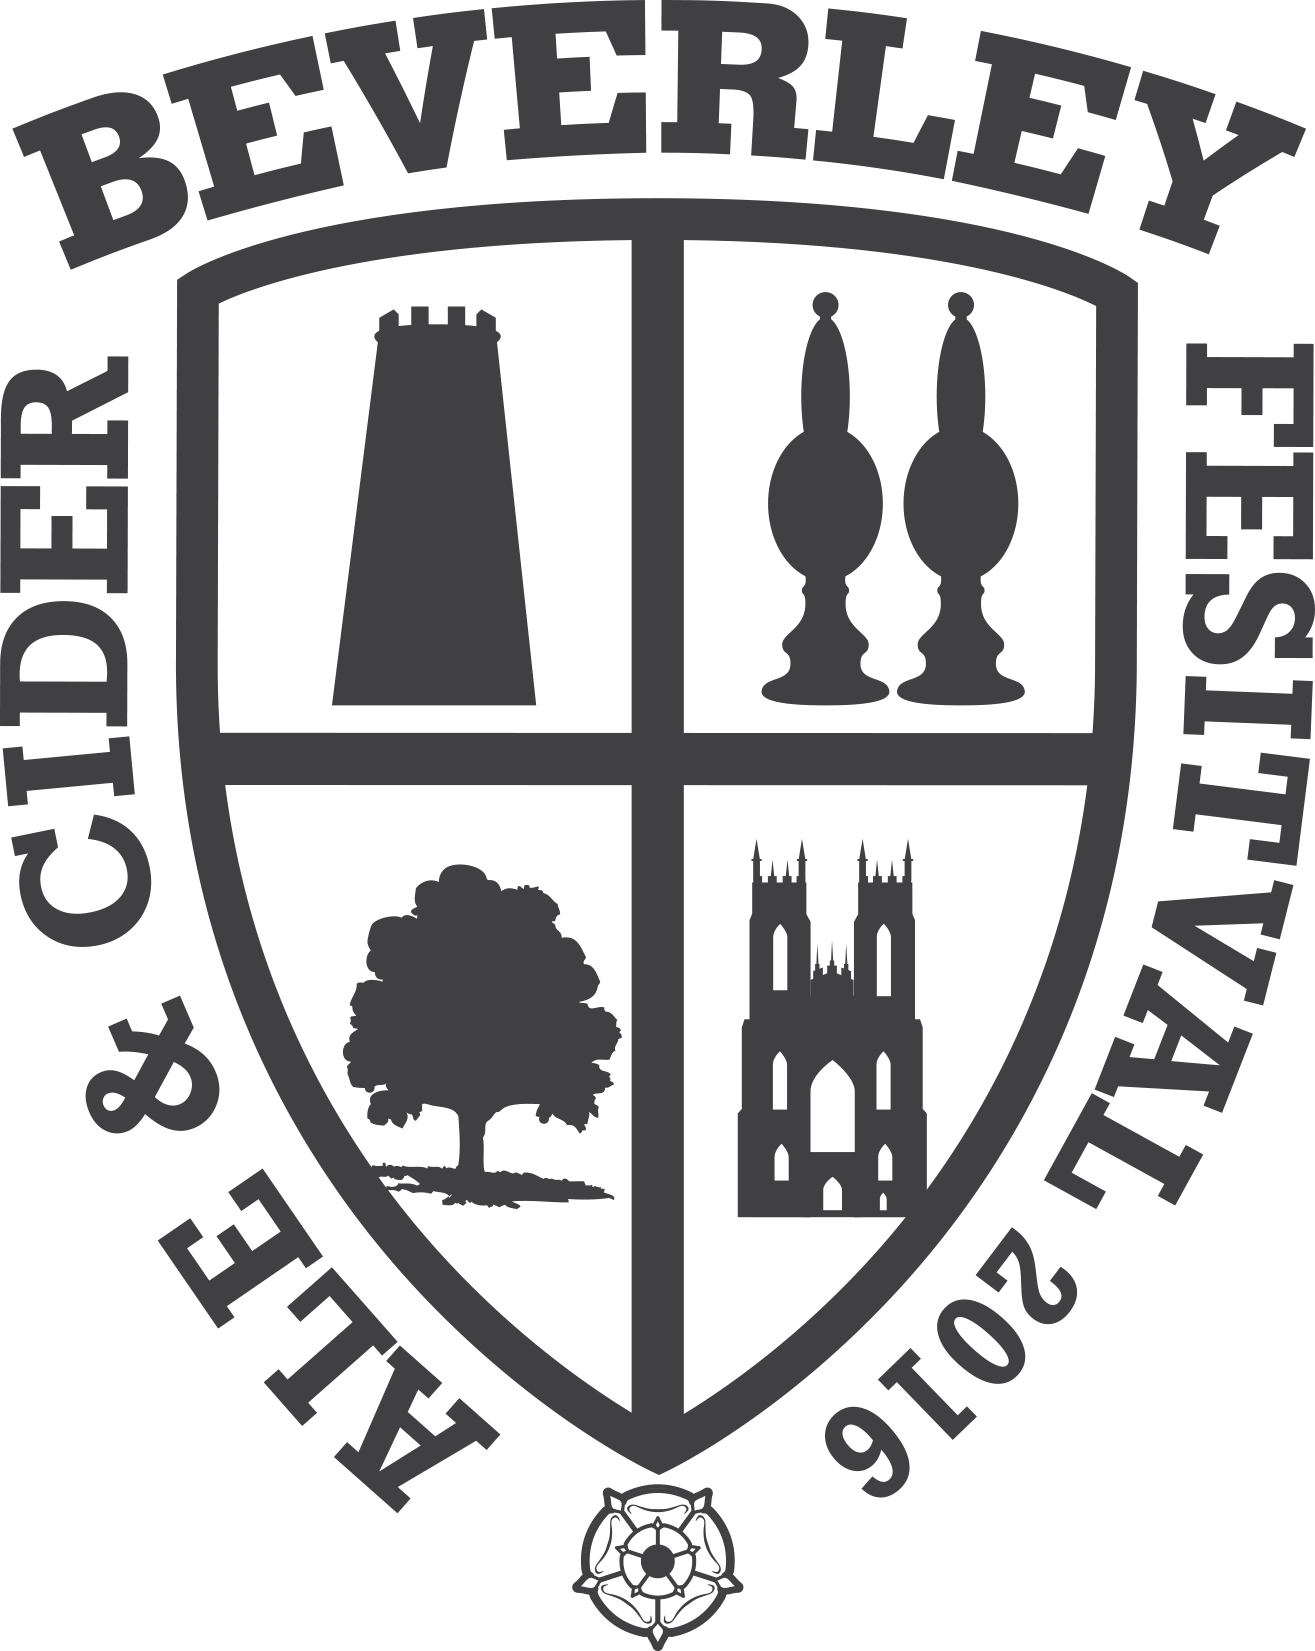 Beverley Craft Beer and Cider Festival